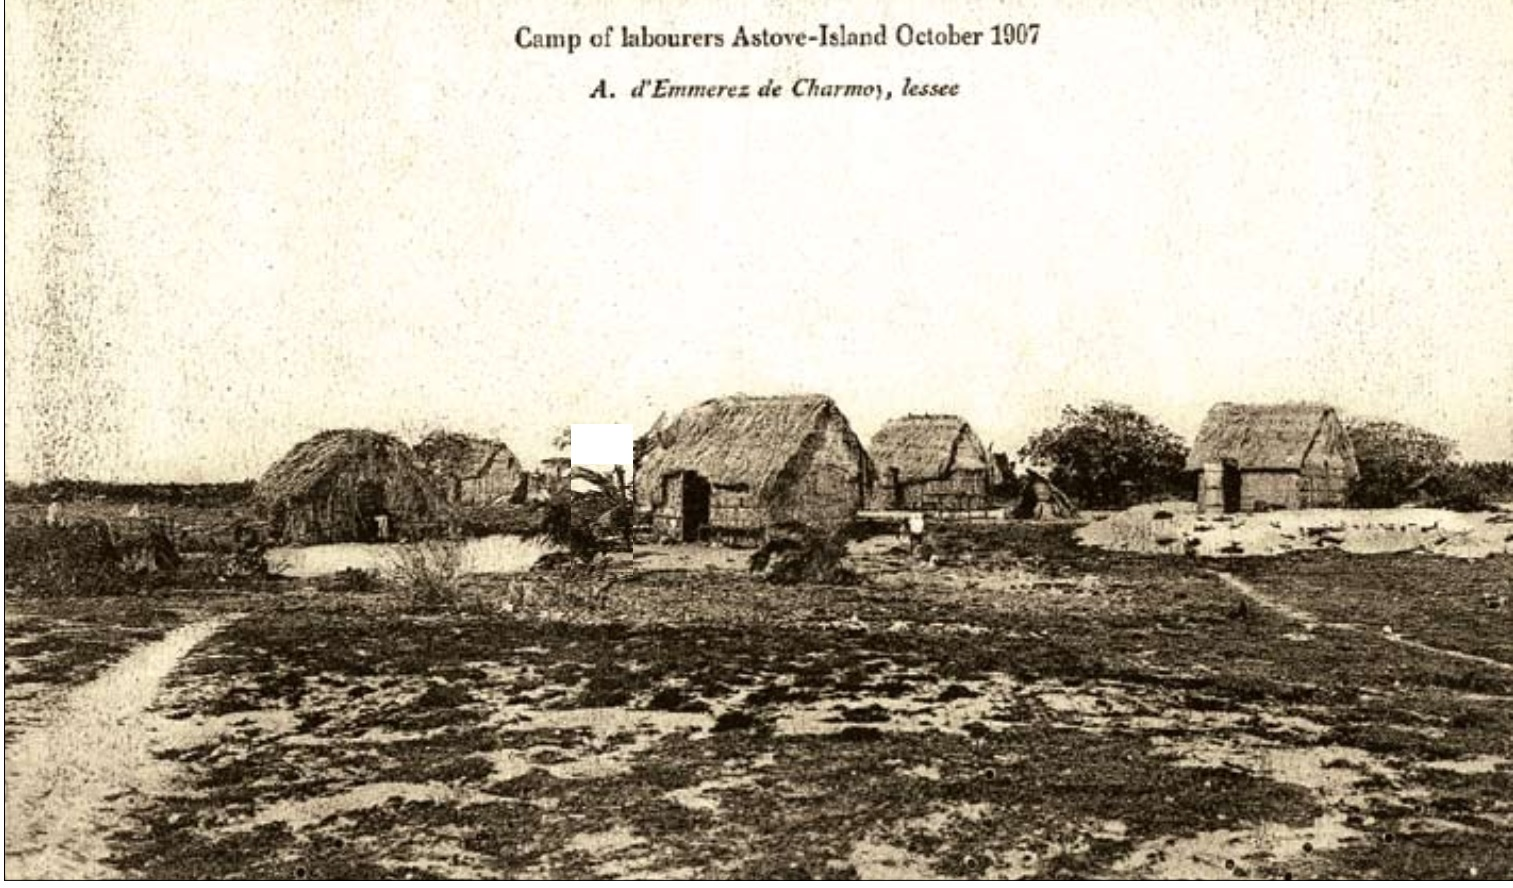 Laborer camp on Astove Island, October 1907